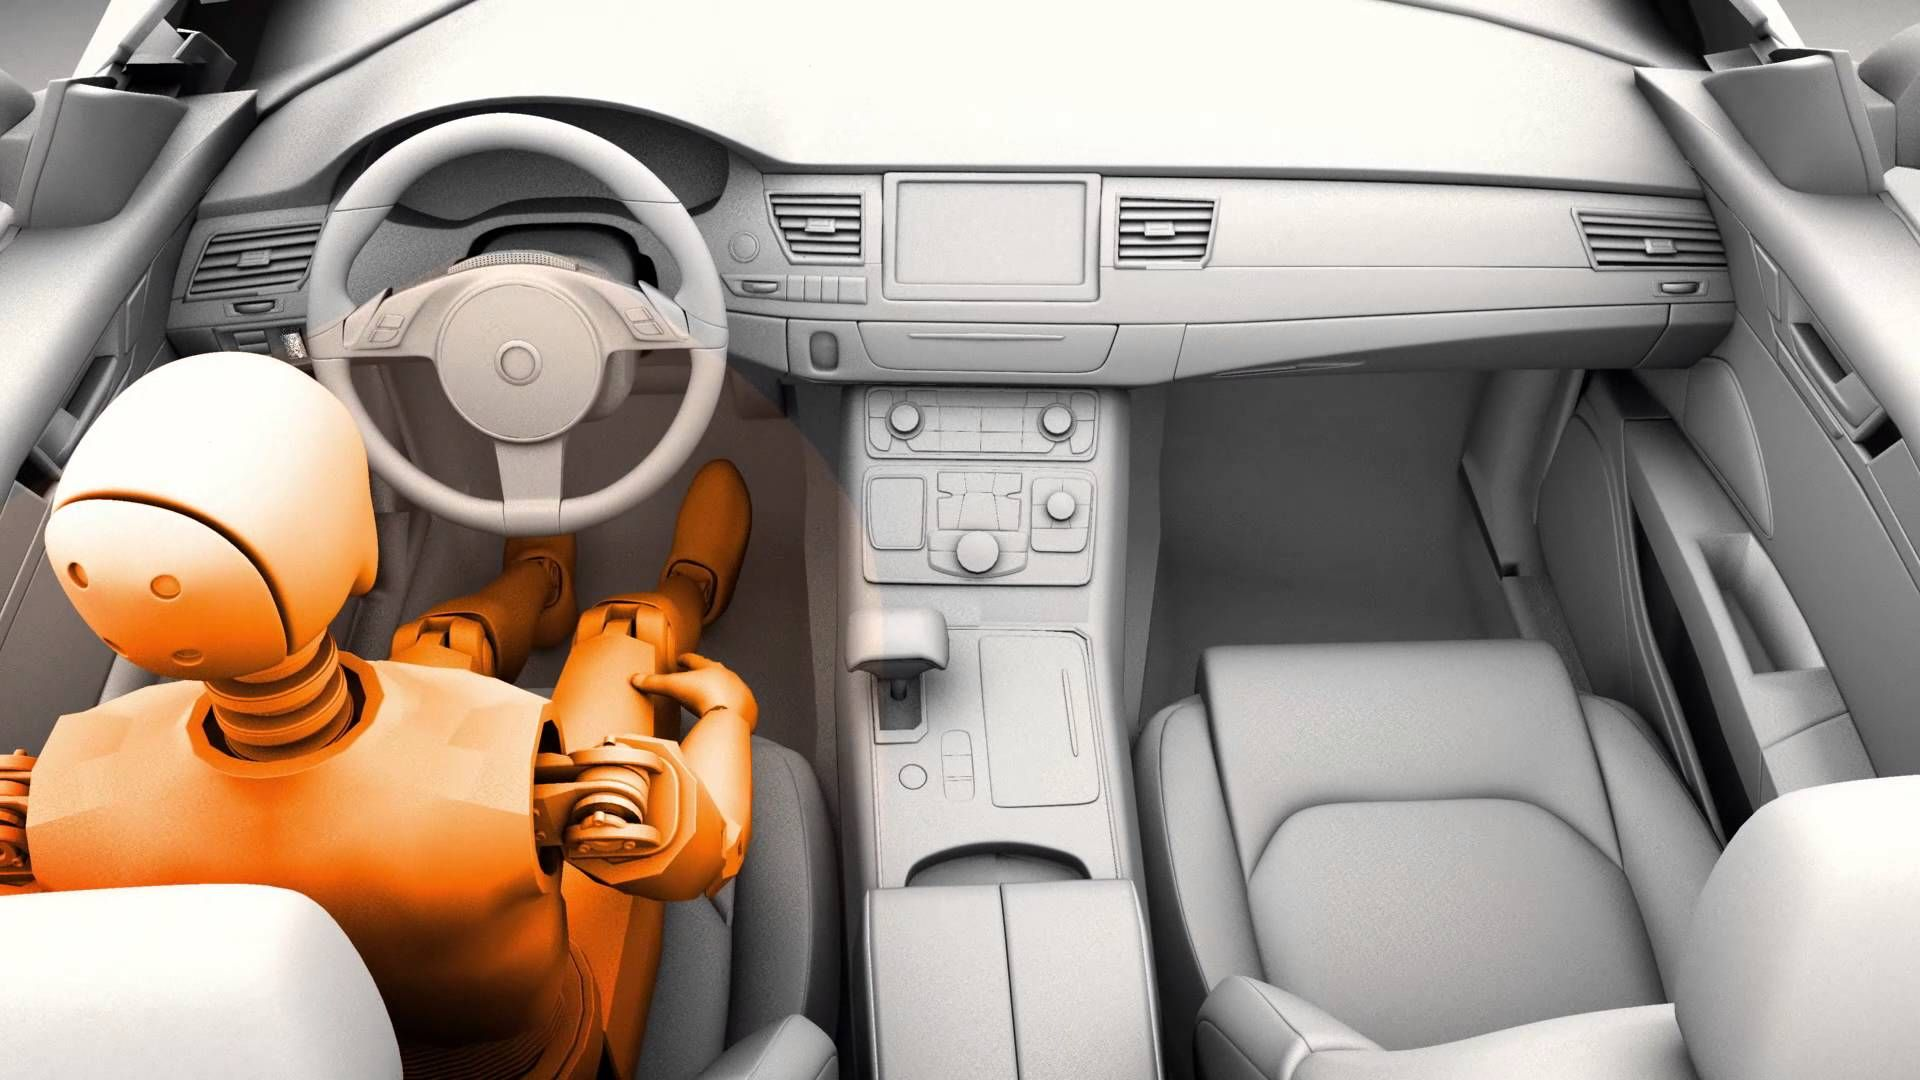 NHTSA reveals the new Driver Alcohol Detection System for